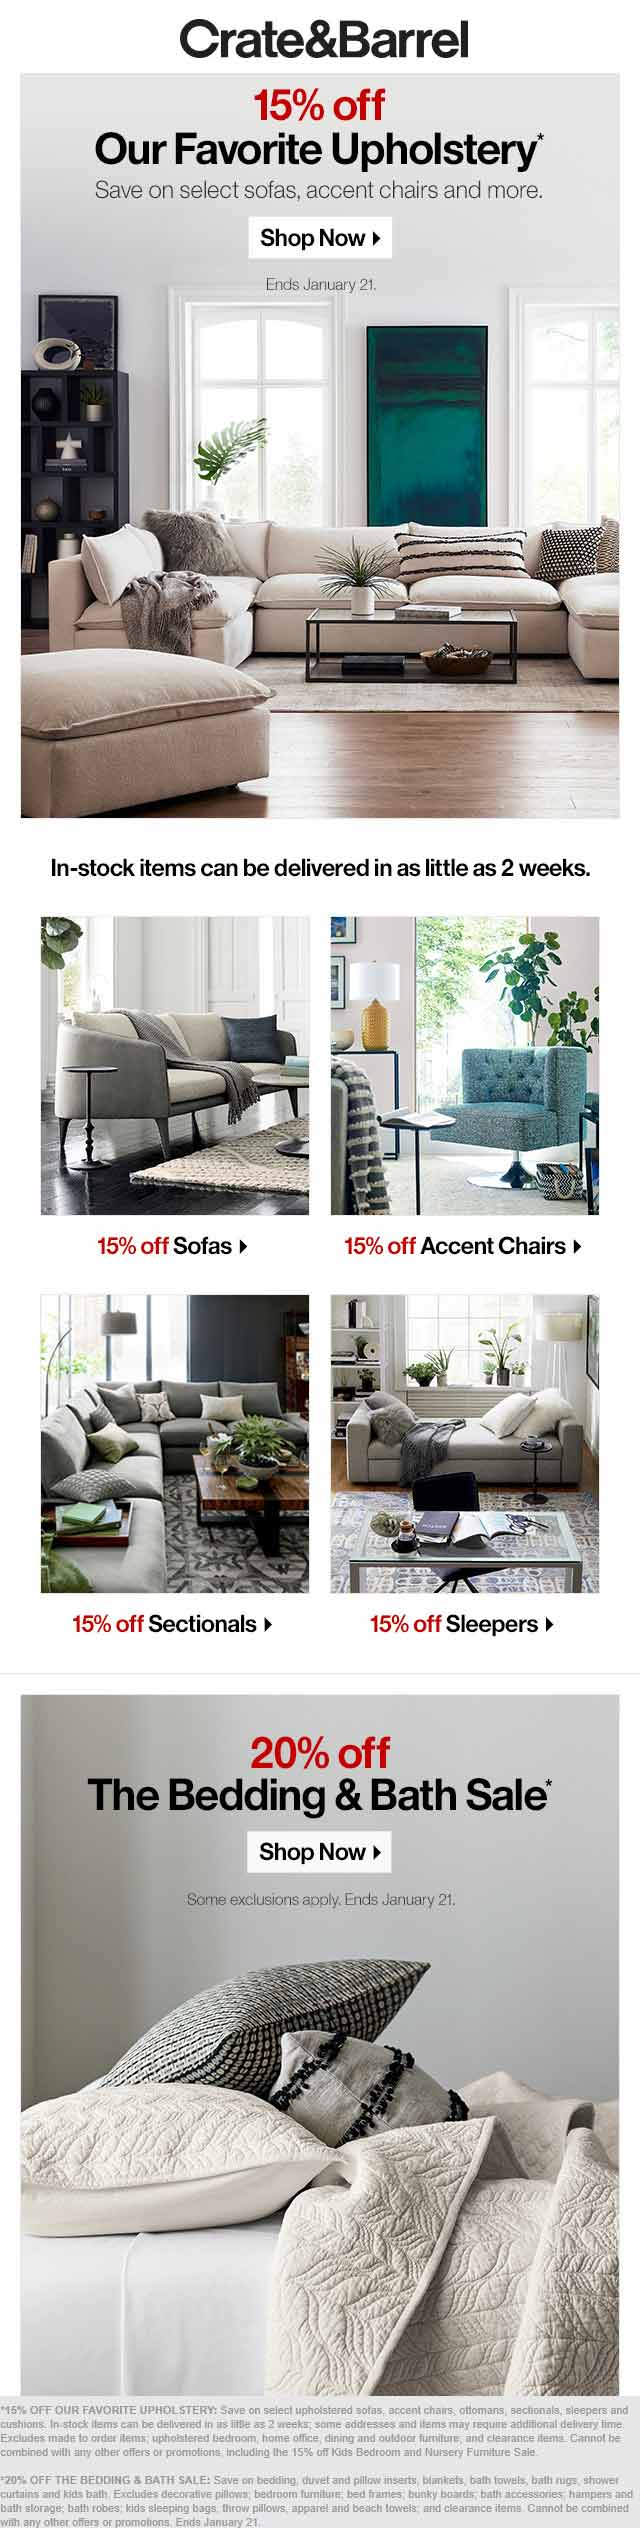 Crate & Barrel Coupon May 2019 15-20% off upholstery & linens at Crate & Barrel, ditto online